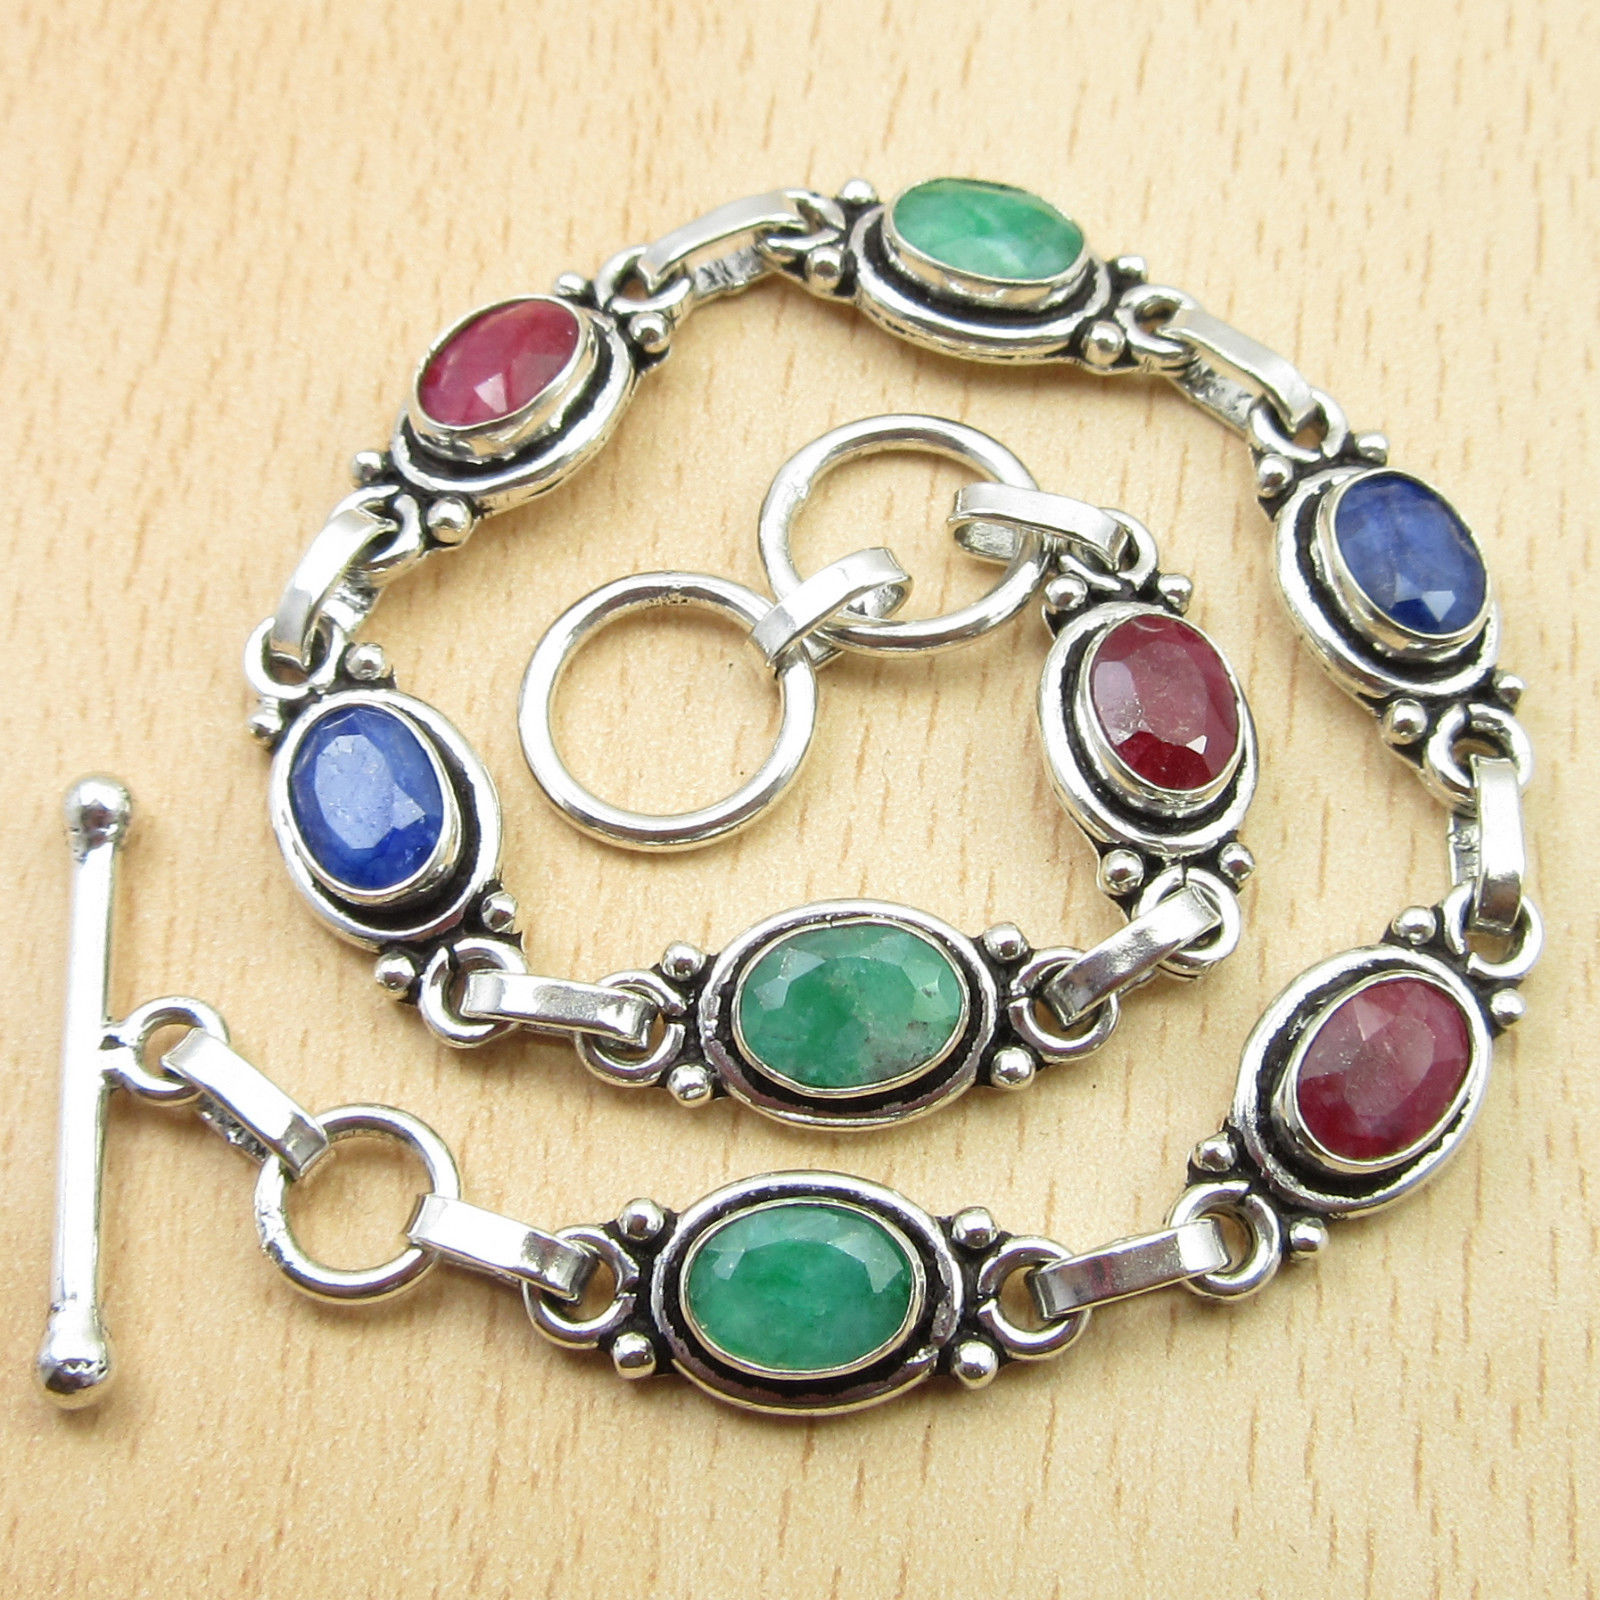 Silver Plated Rubys, Emeralds, Sapphires Multi Colored Bracelet 8 1/2 Jewelry Variation